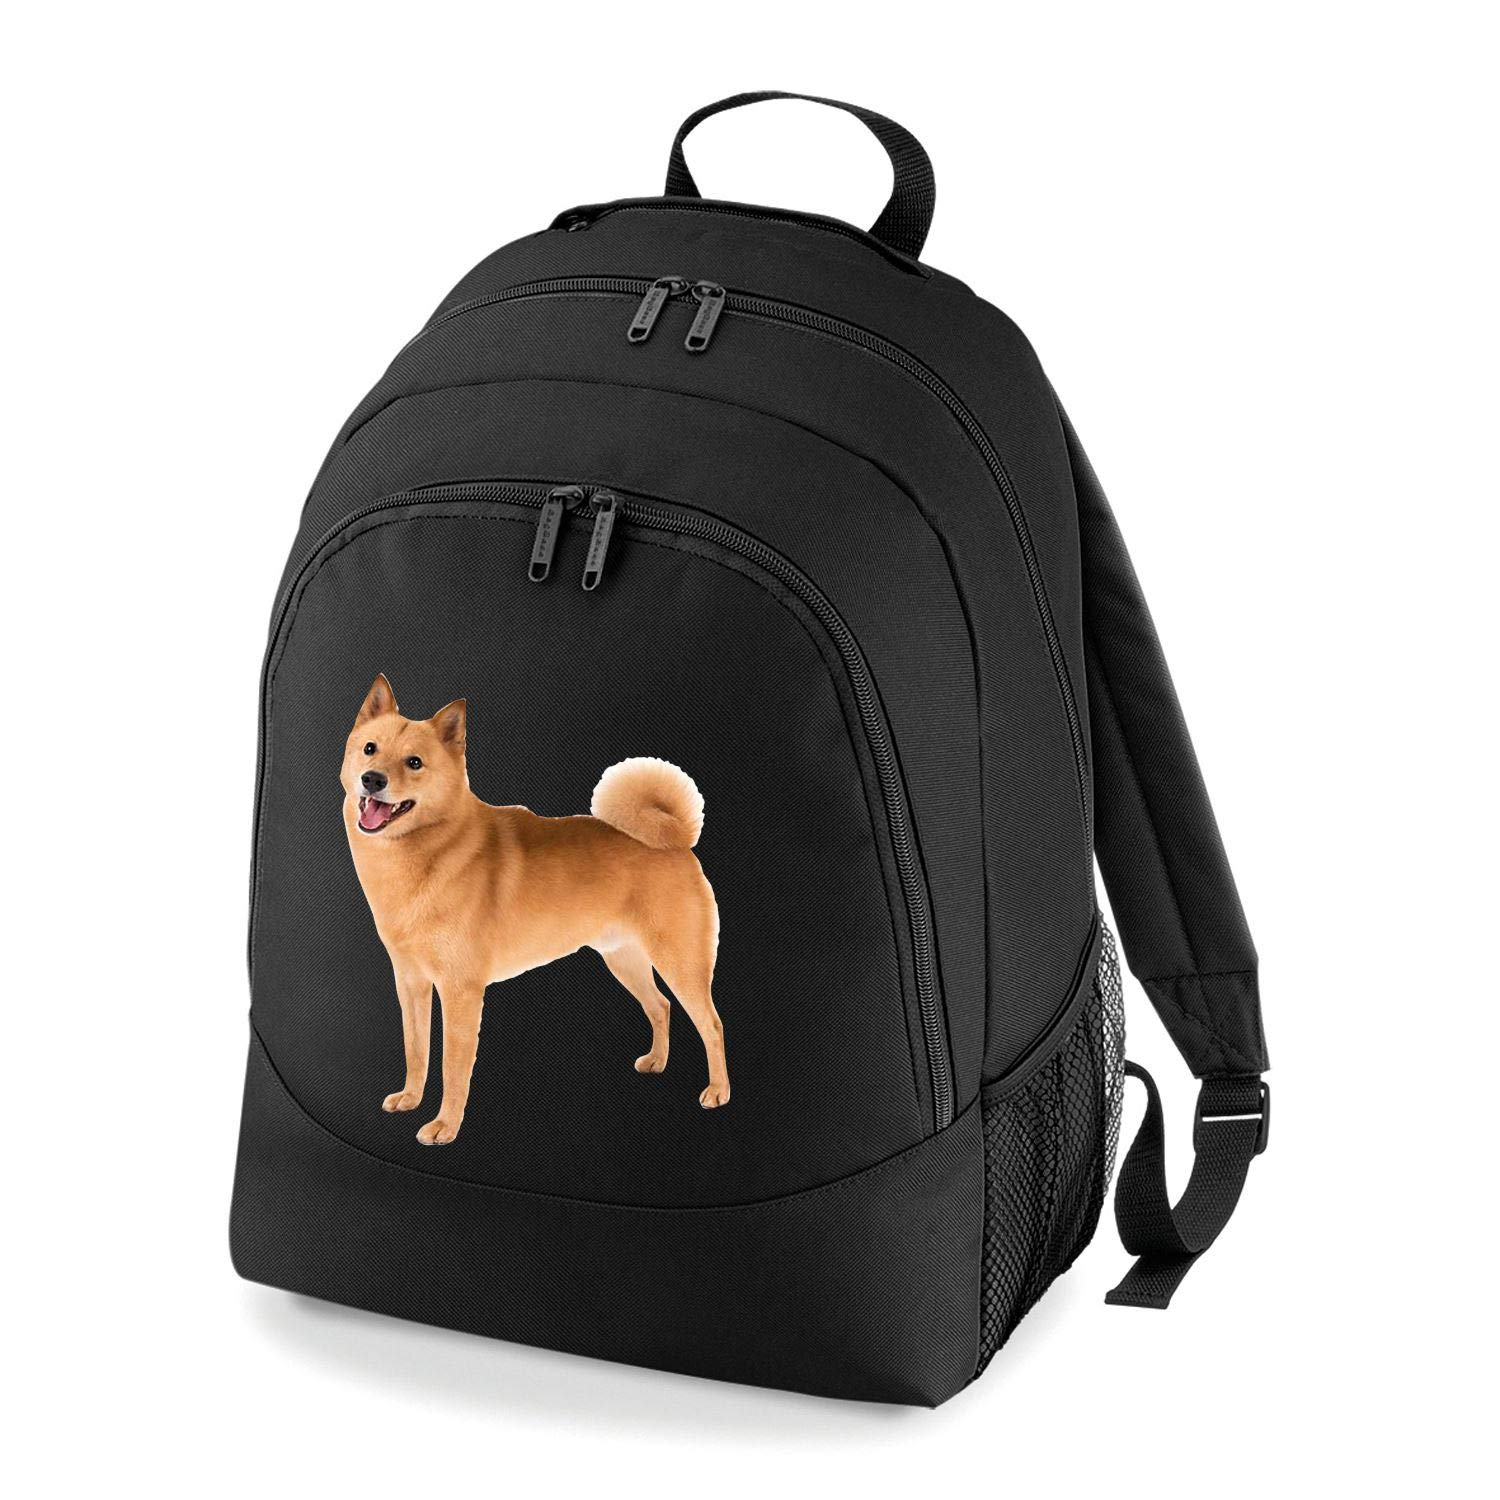 Taurus Clothing Finnish Spitz Dog Personalised Embroidered Rucksack Black